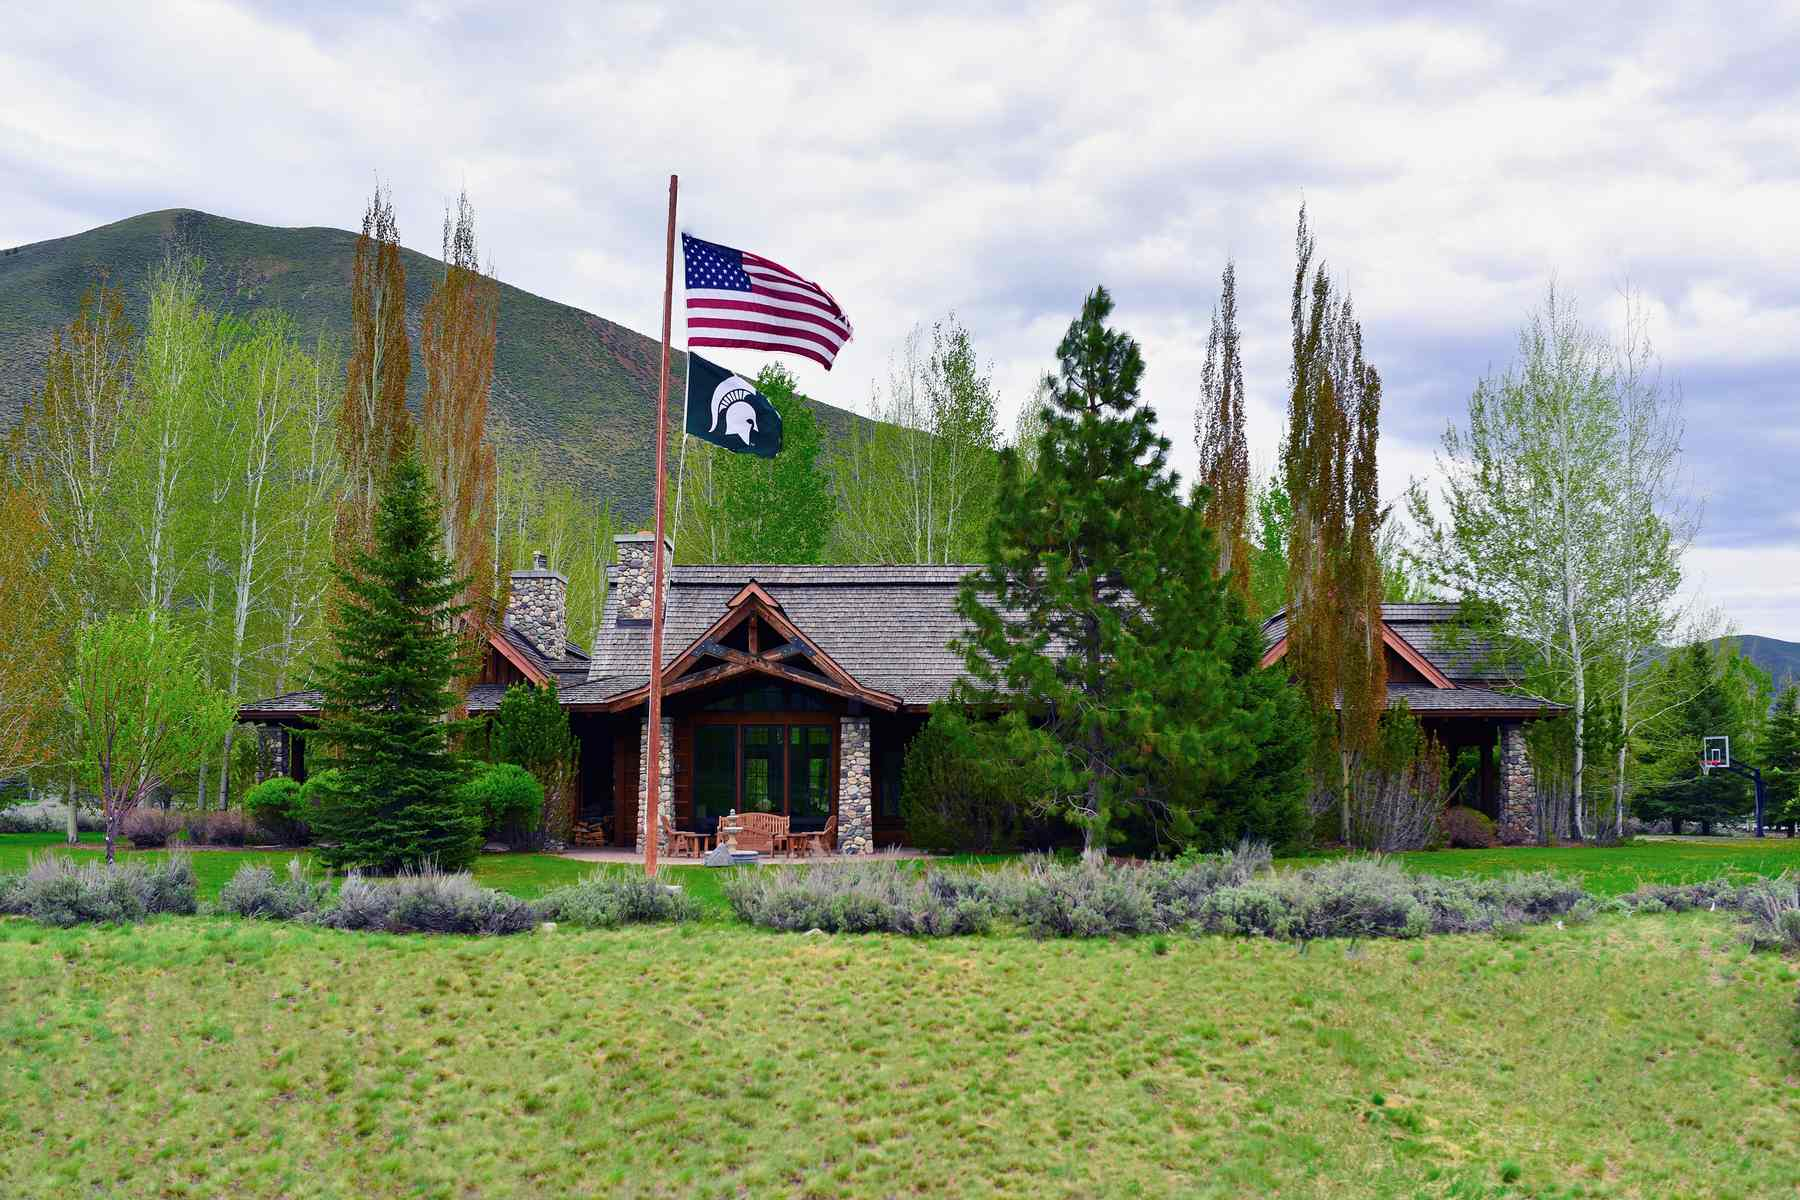 Single Family Home for Active at Luxury on Fairway Five 35 Copper Creek Road Hailey, Idaho 83333 United States